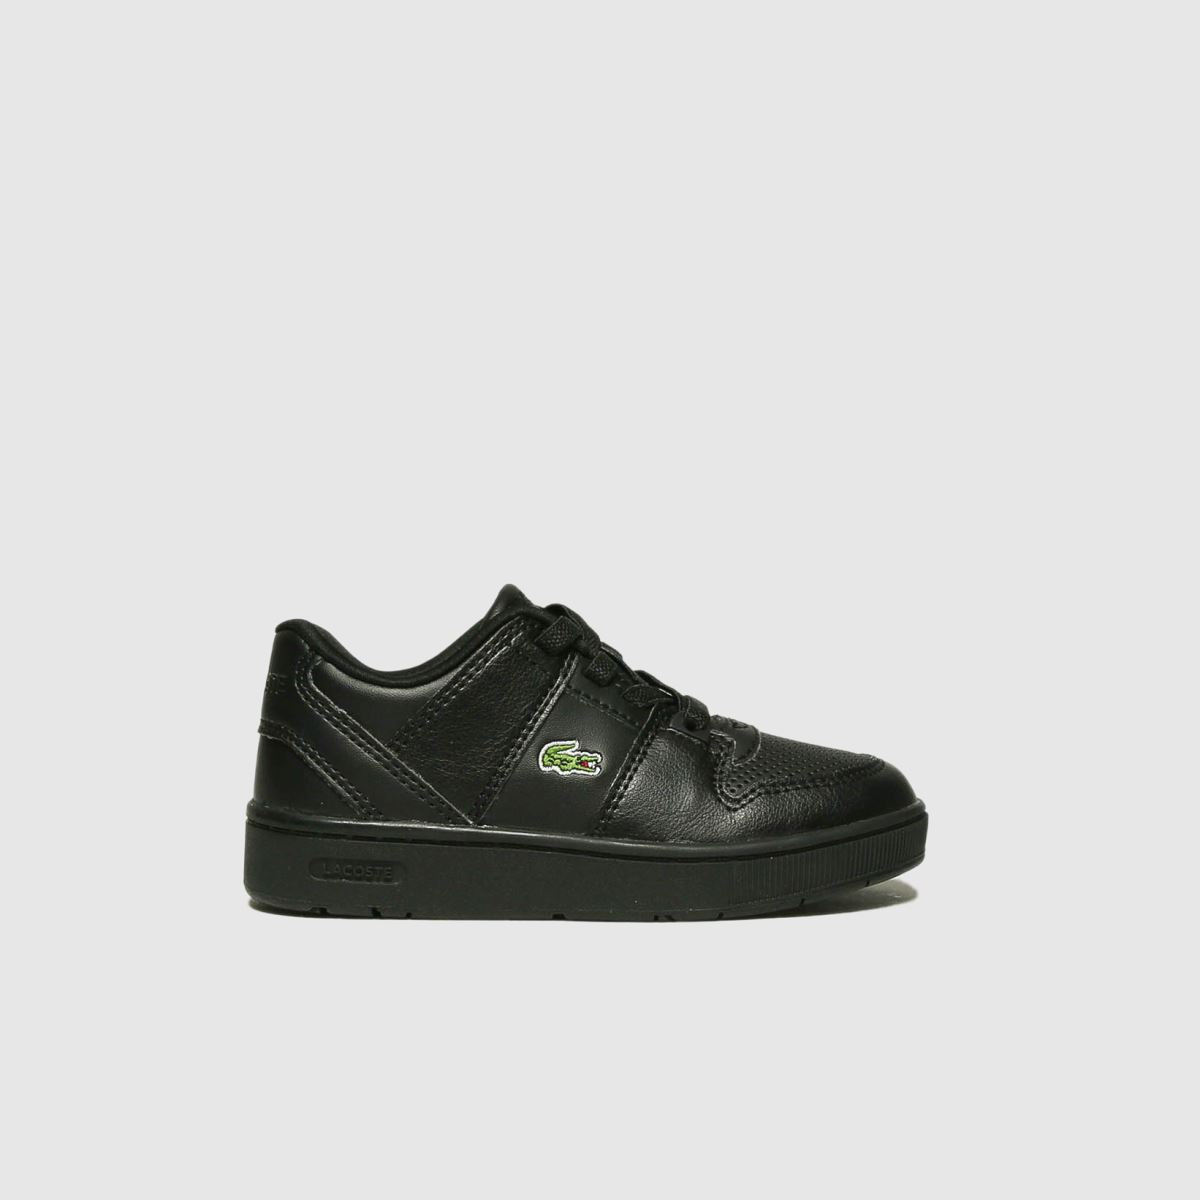 Lacoste Black Thrill Trainers Toddler